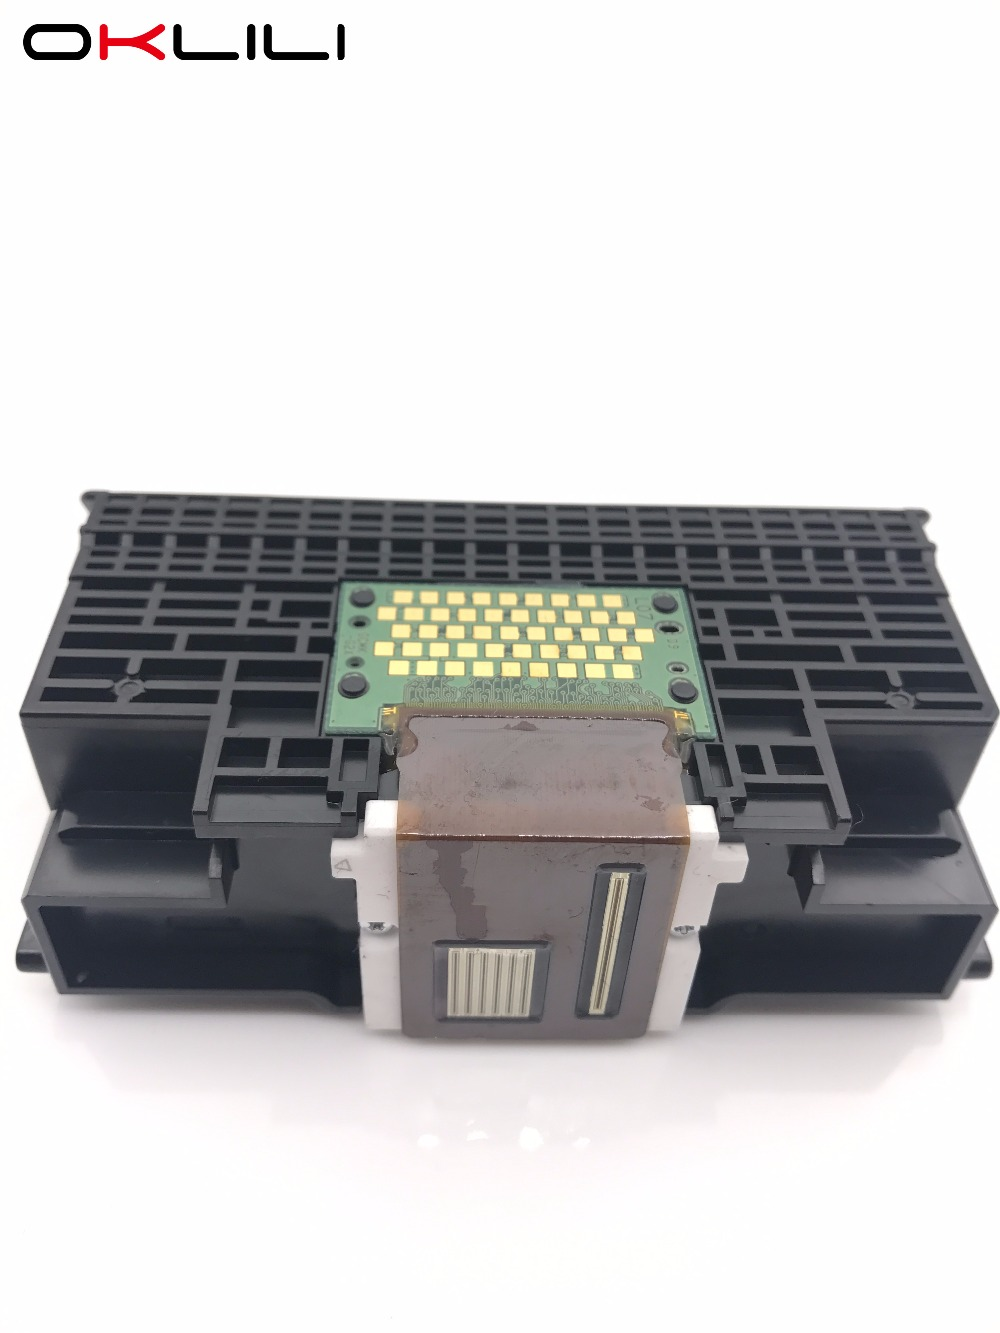 OKLILI ORIGINAL QY6-0062 QY6-0062-000 Printhead Print Head Printer Head for Canon iP7500 iP7600 MP950 MP960 MP970 oklili original qy6 0045 qy6 0045 000 printhead print head printer head for canon i550 pixus 550i